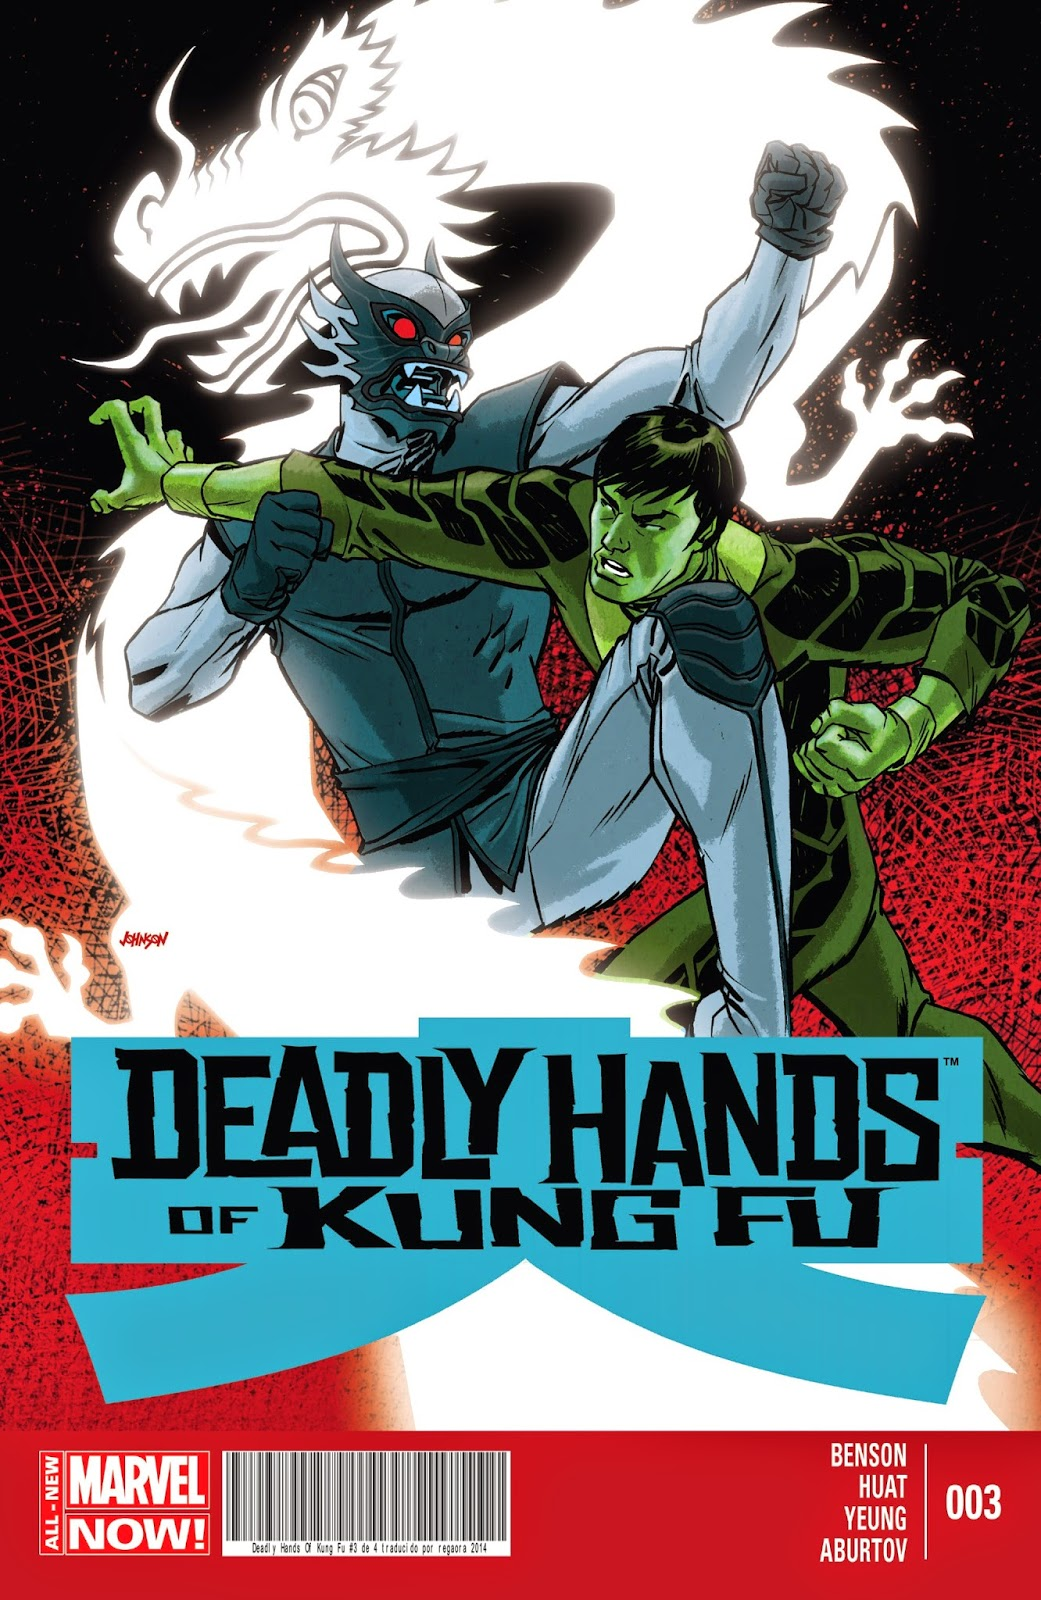 Portada de The Deadly Hands of Kung Fu 2014 miniserie 03